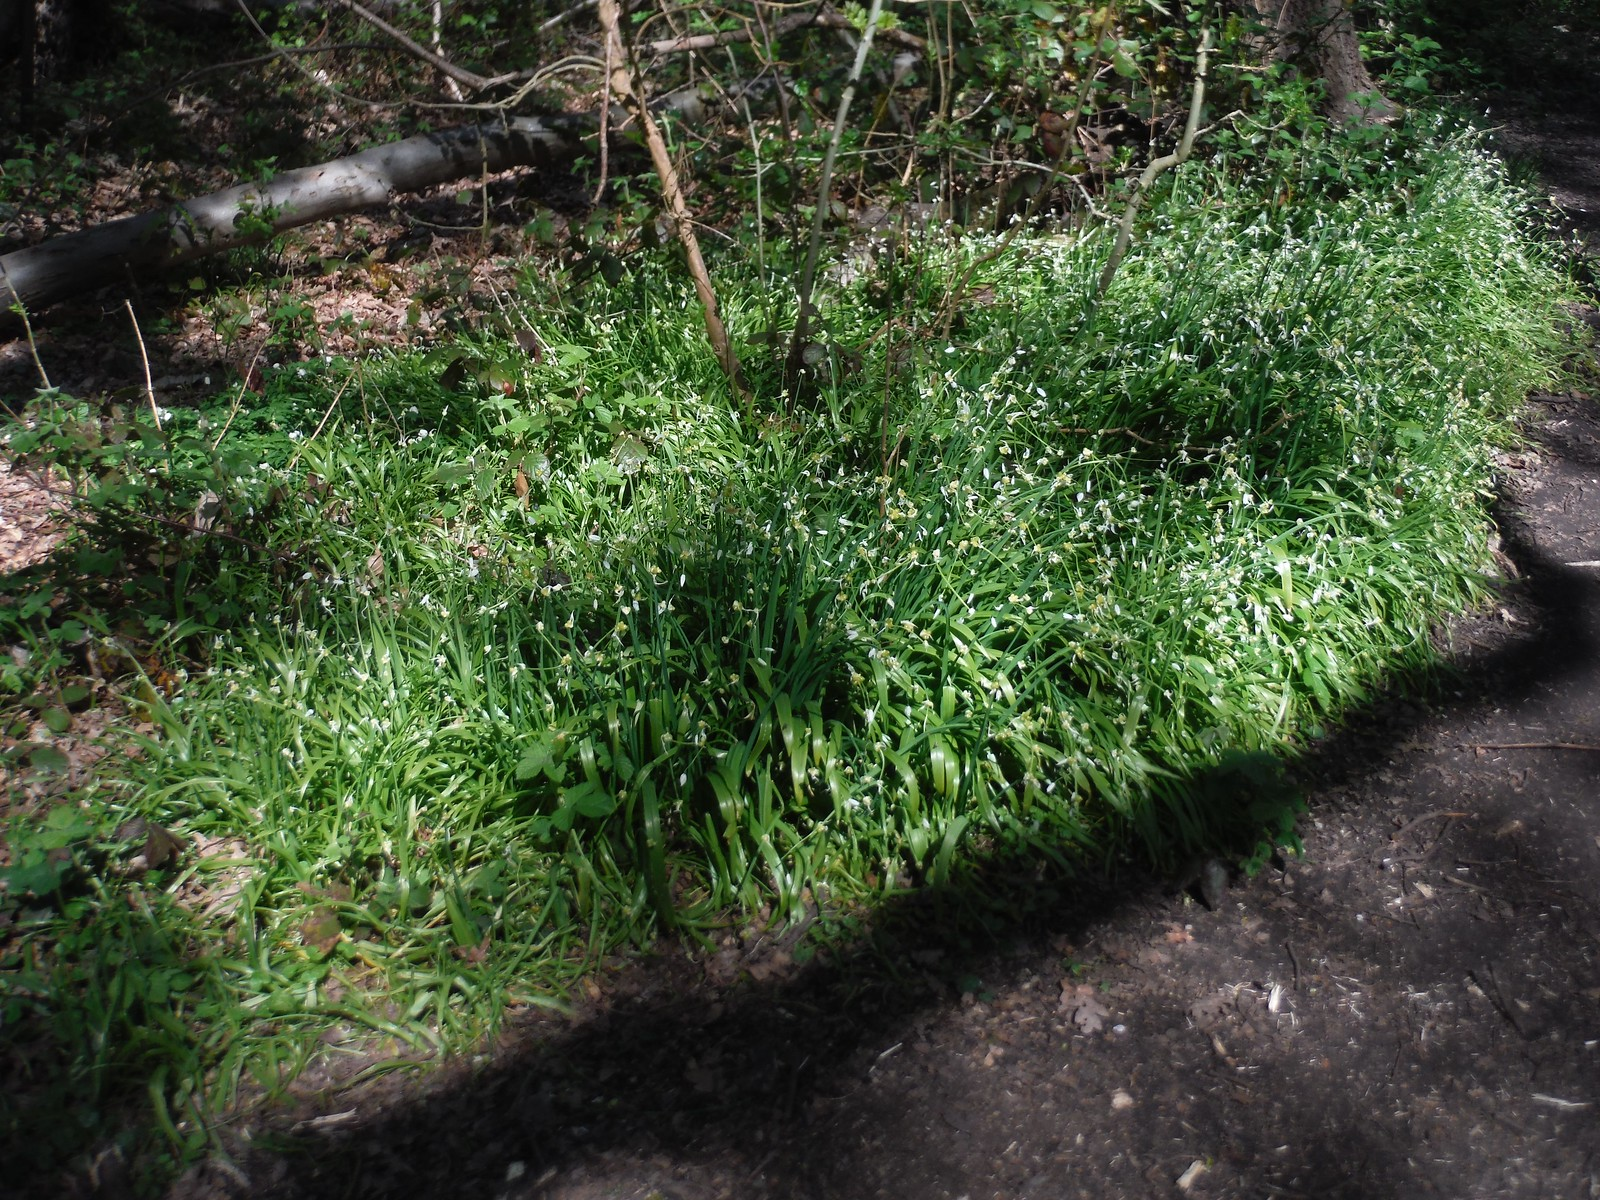 Wild Garlic in Shepherdleas Wood SWC Short Walk 44 - Oxleas Wood and Shooters Hill (Falconwood Circular)